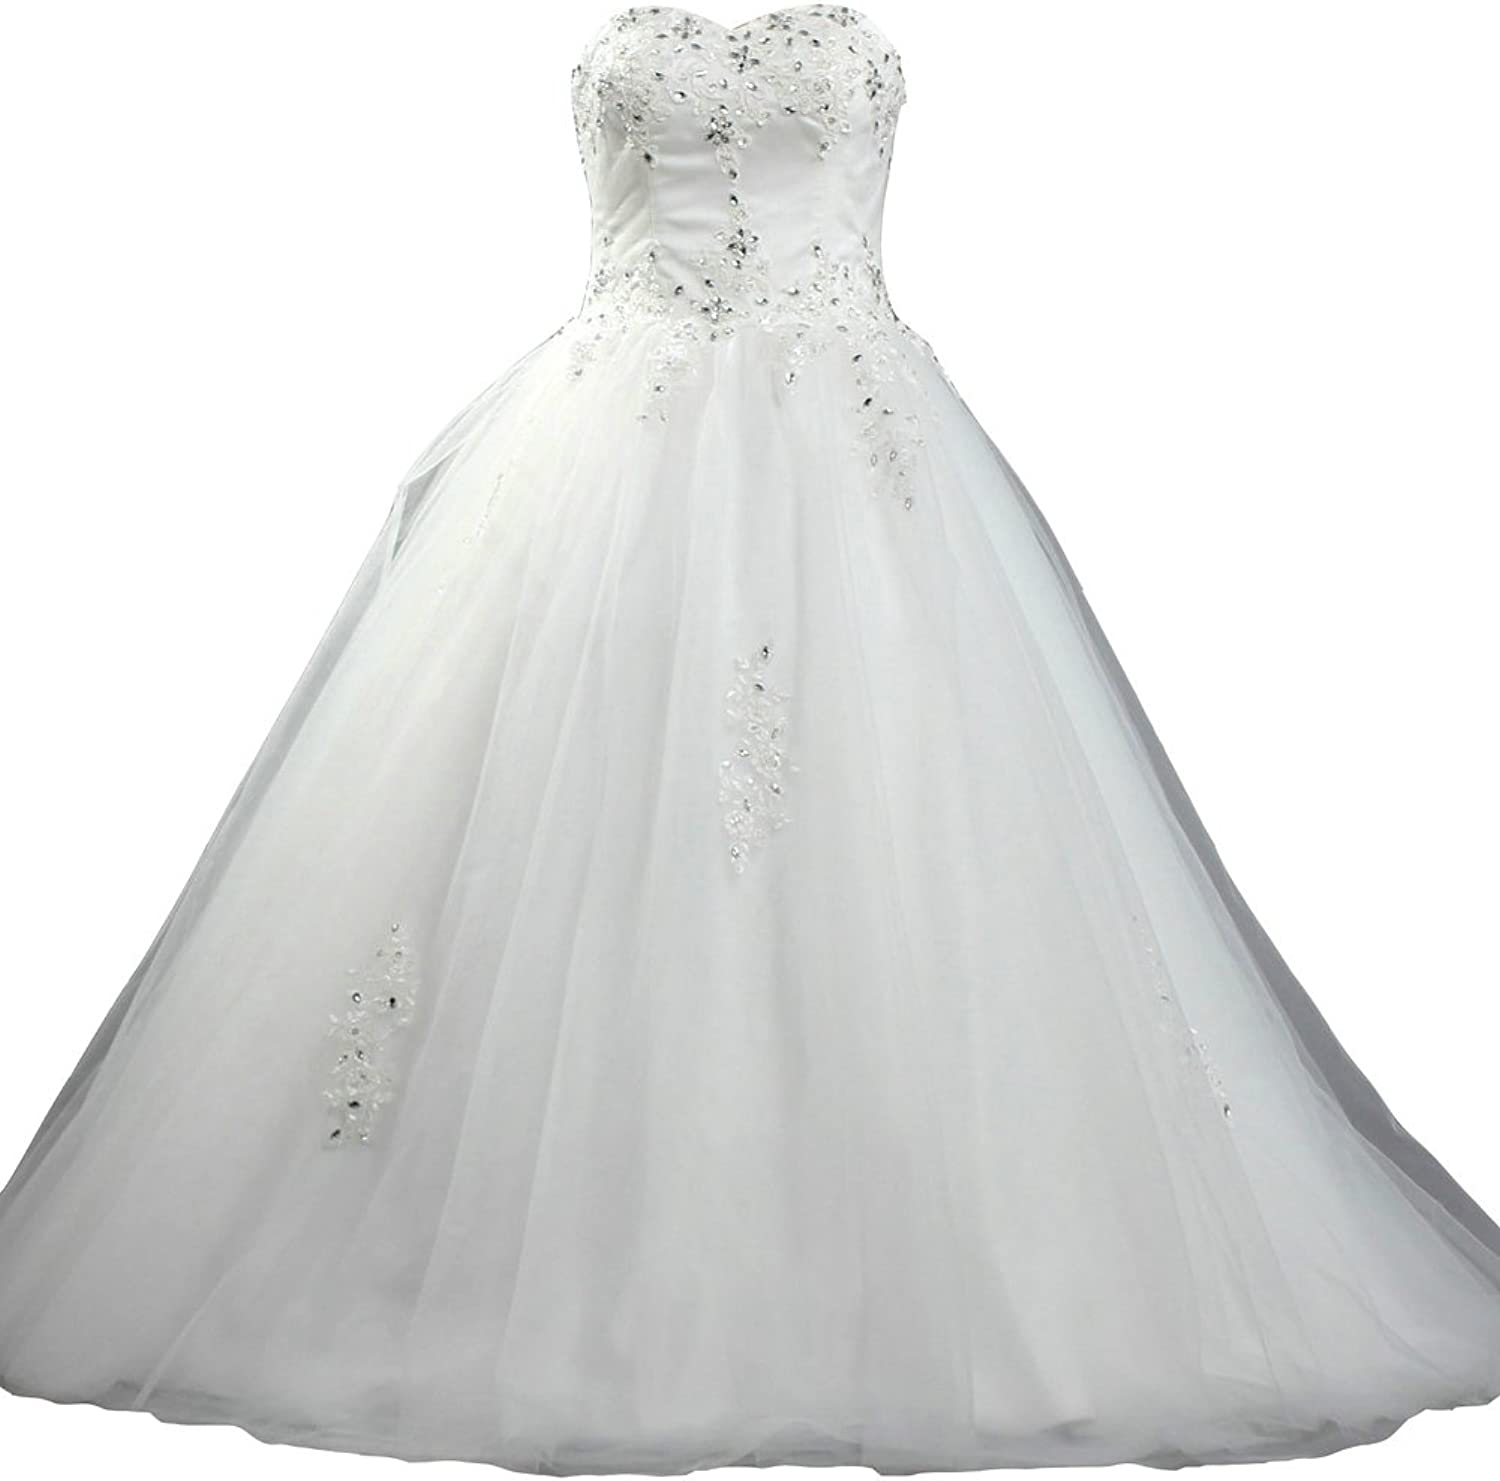 ANTS Women's A Line Sweetheart Bridal Dress with Beads